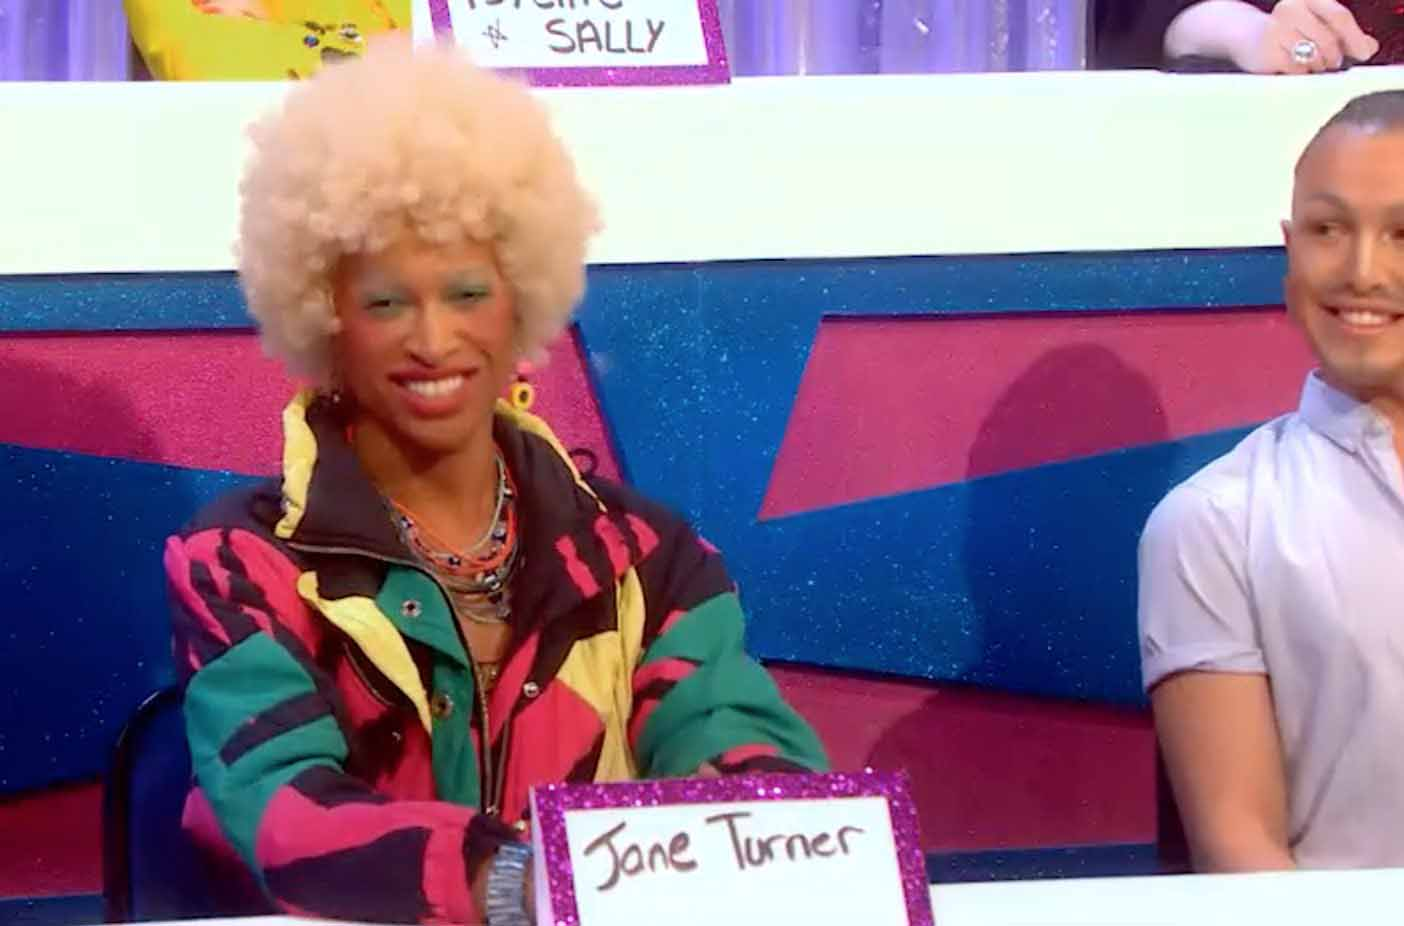 'Drag Race UK' has *finally* brought us the iconic Snatch Game. See the lewks from all the queens and our reads on how well they did this episode.